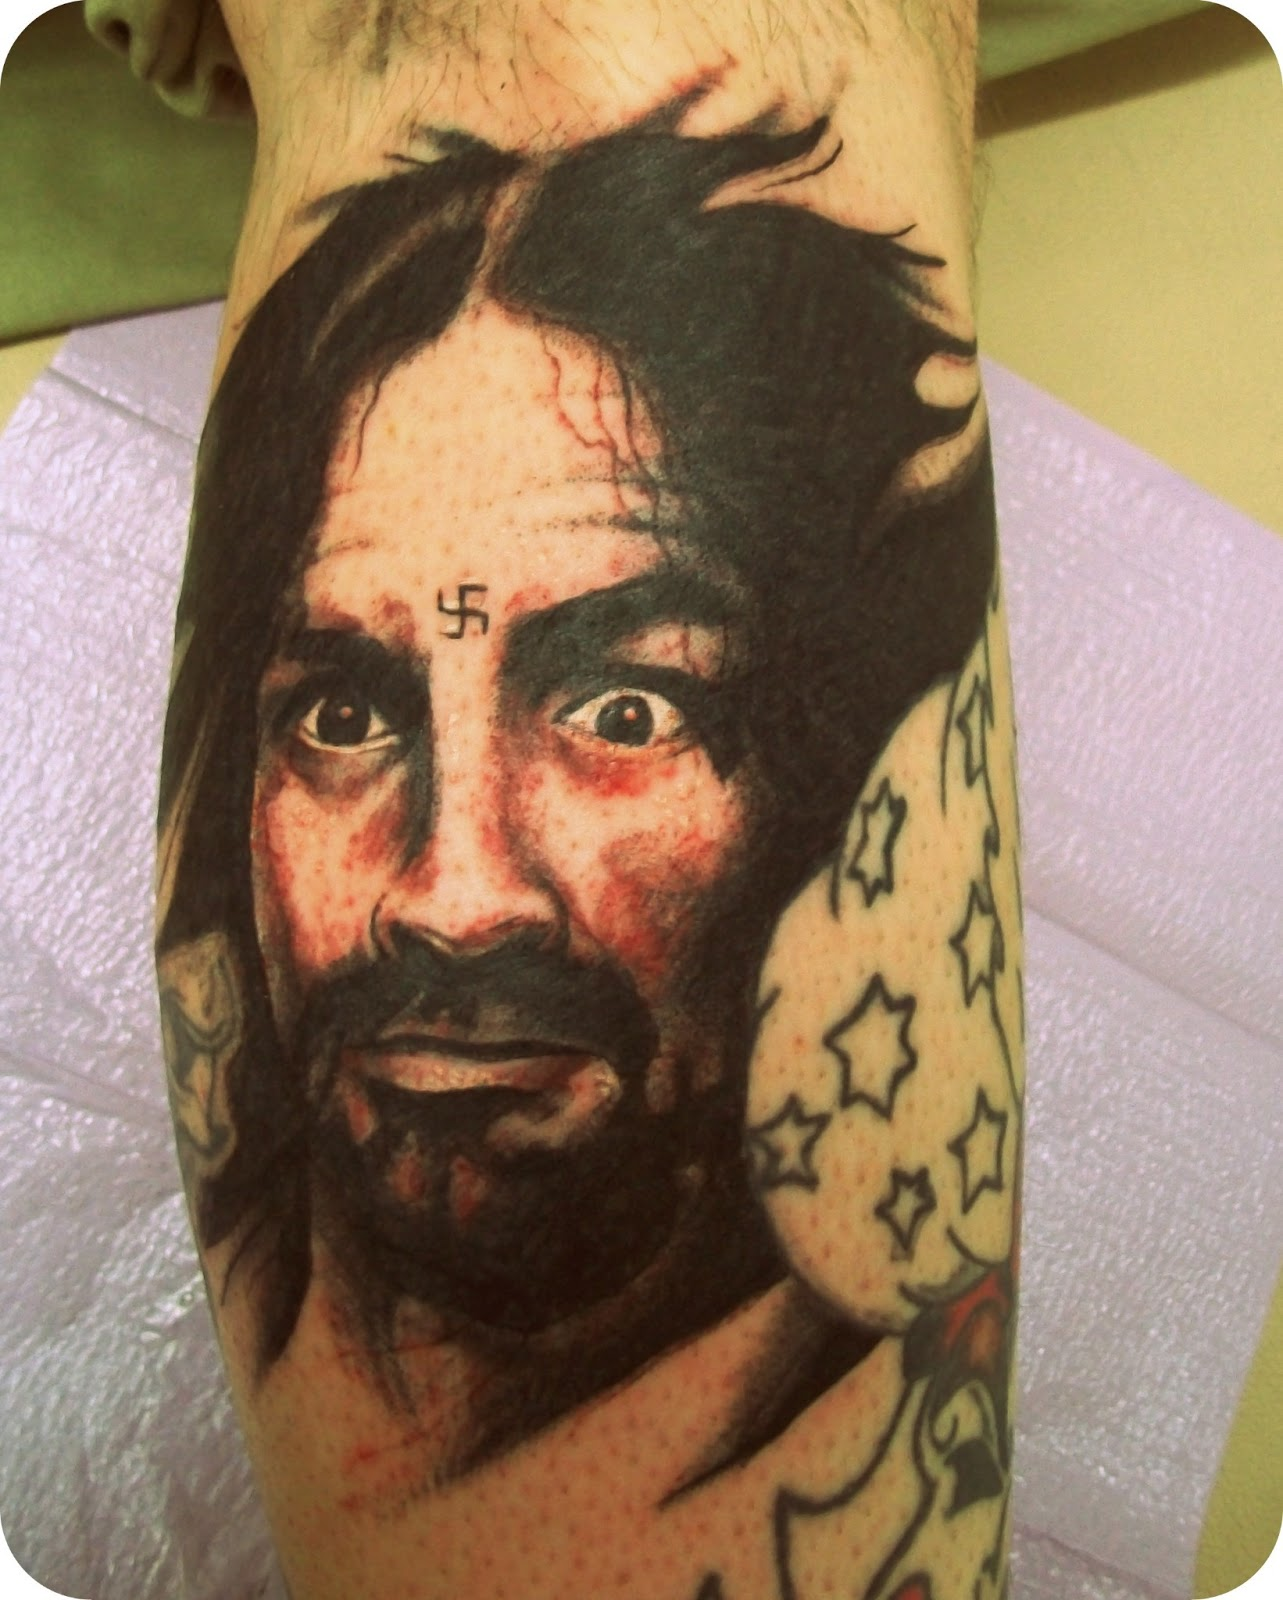 Tattoos by zane watrous march 2013 for Charles manson tattoos